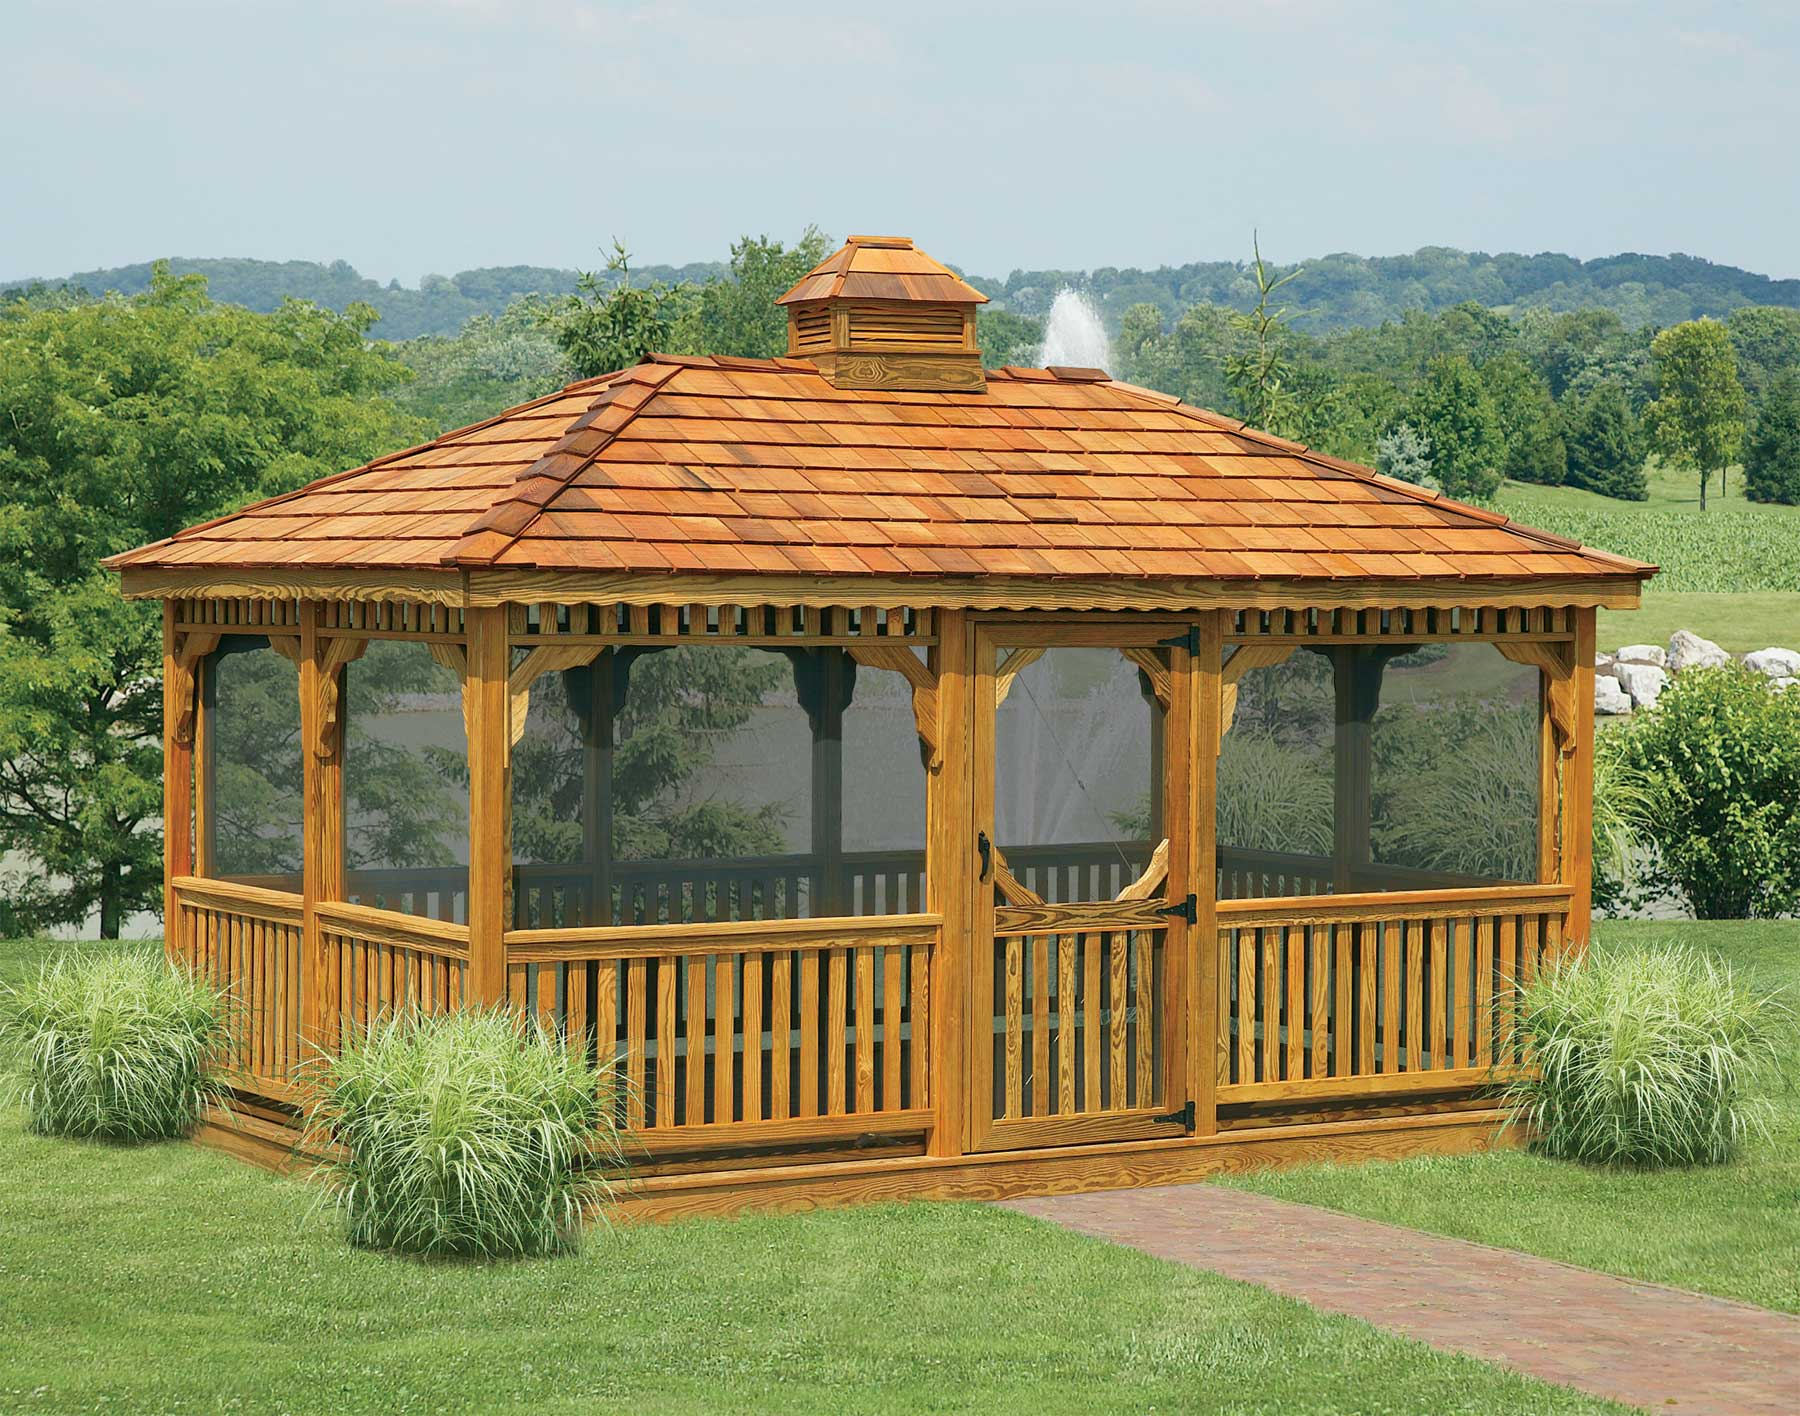 Treated pine single roof rectangle gazebos gazebos by style - Enclosed gazebo models ...